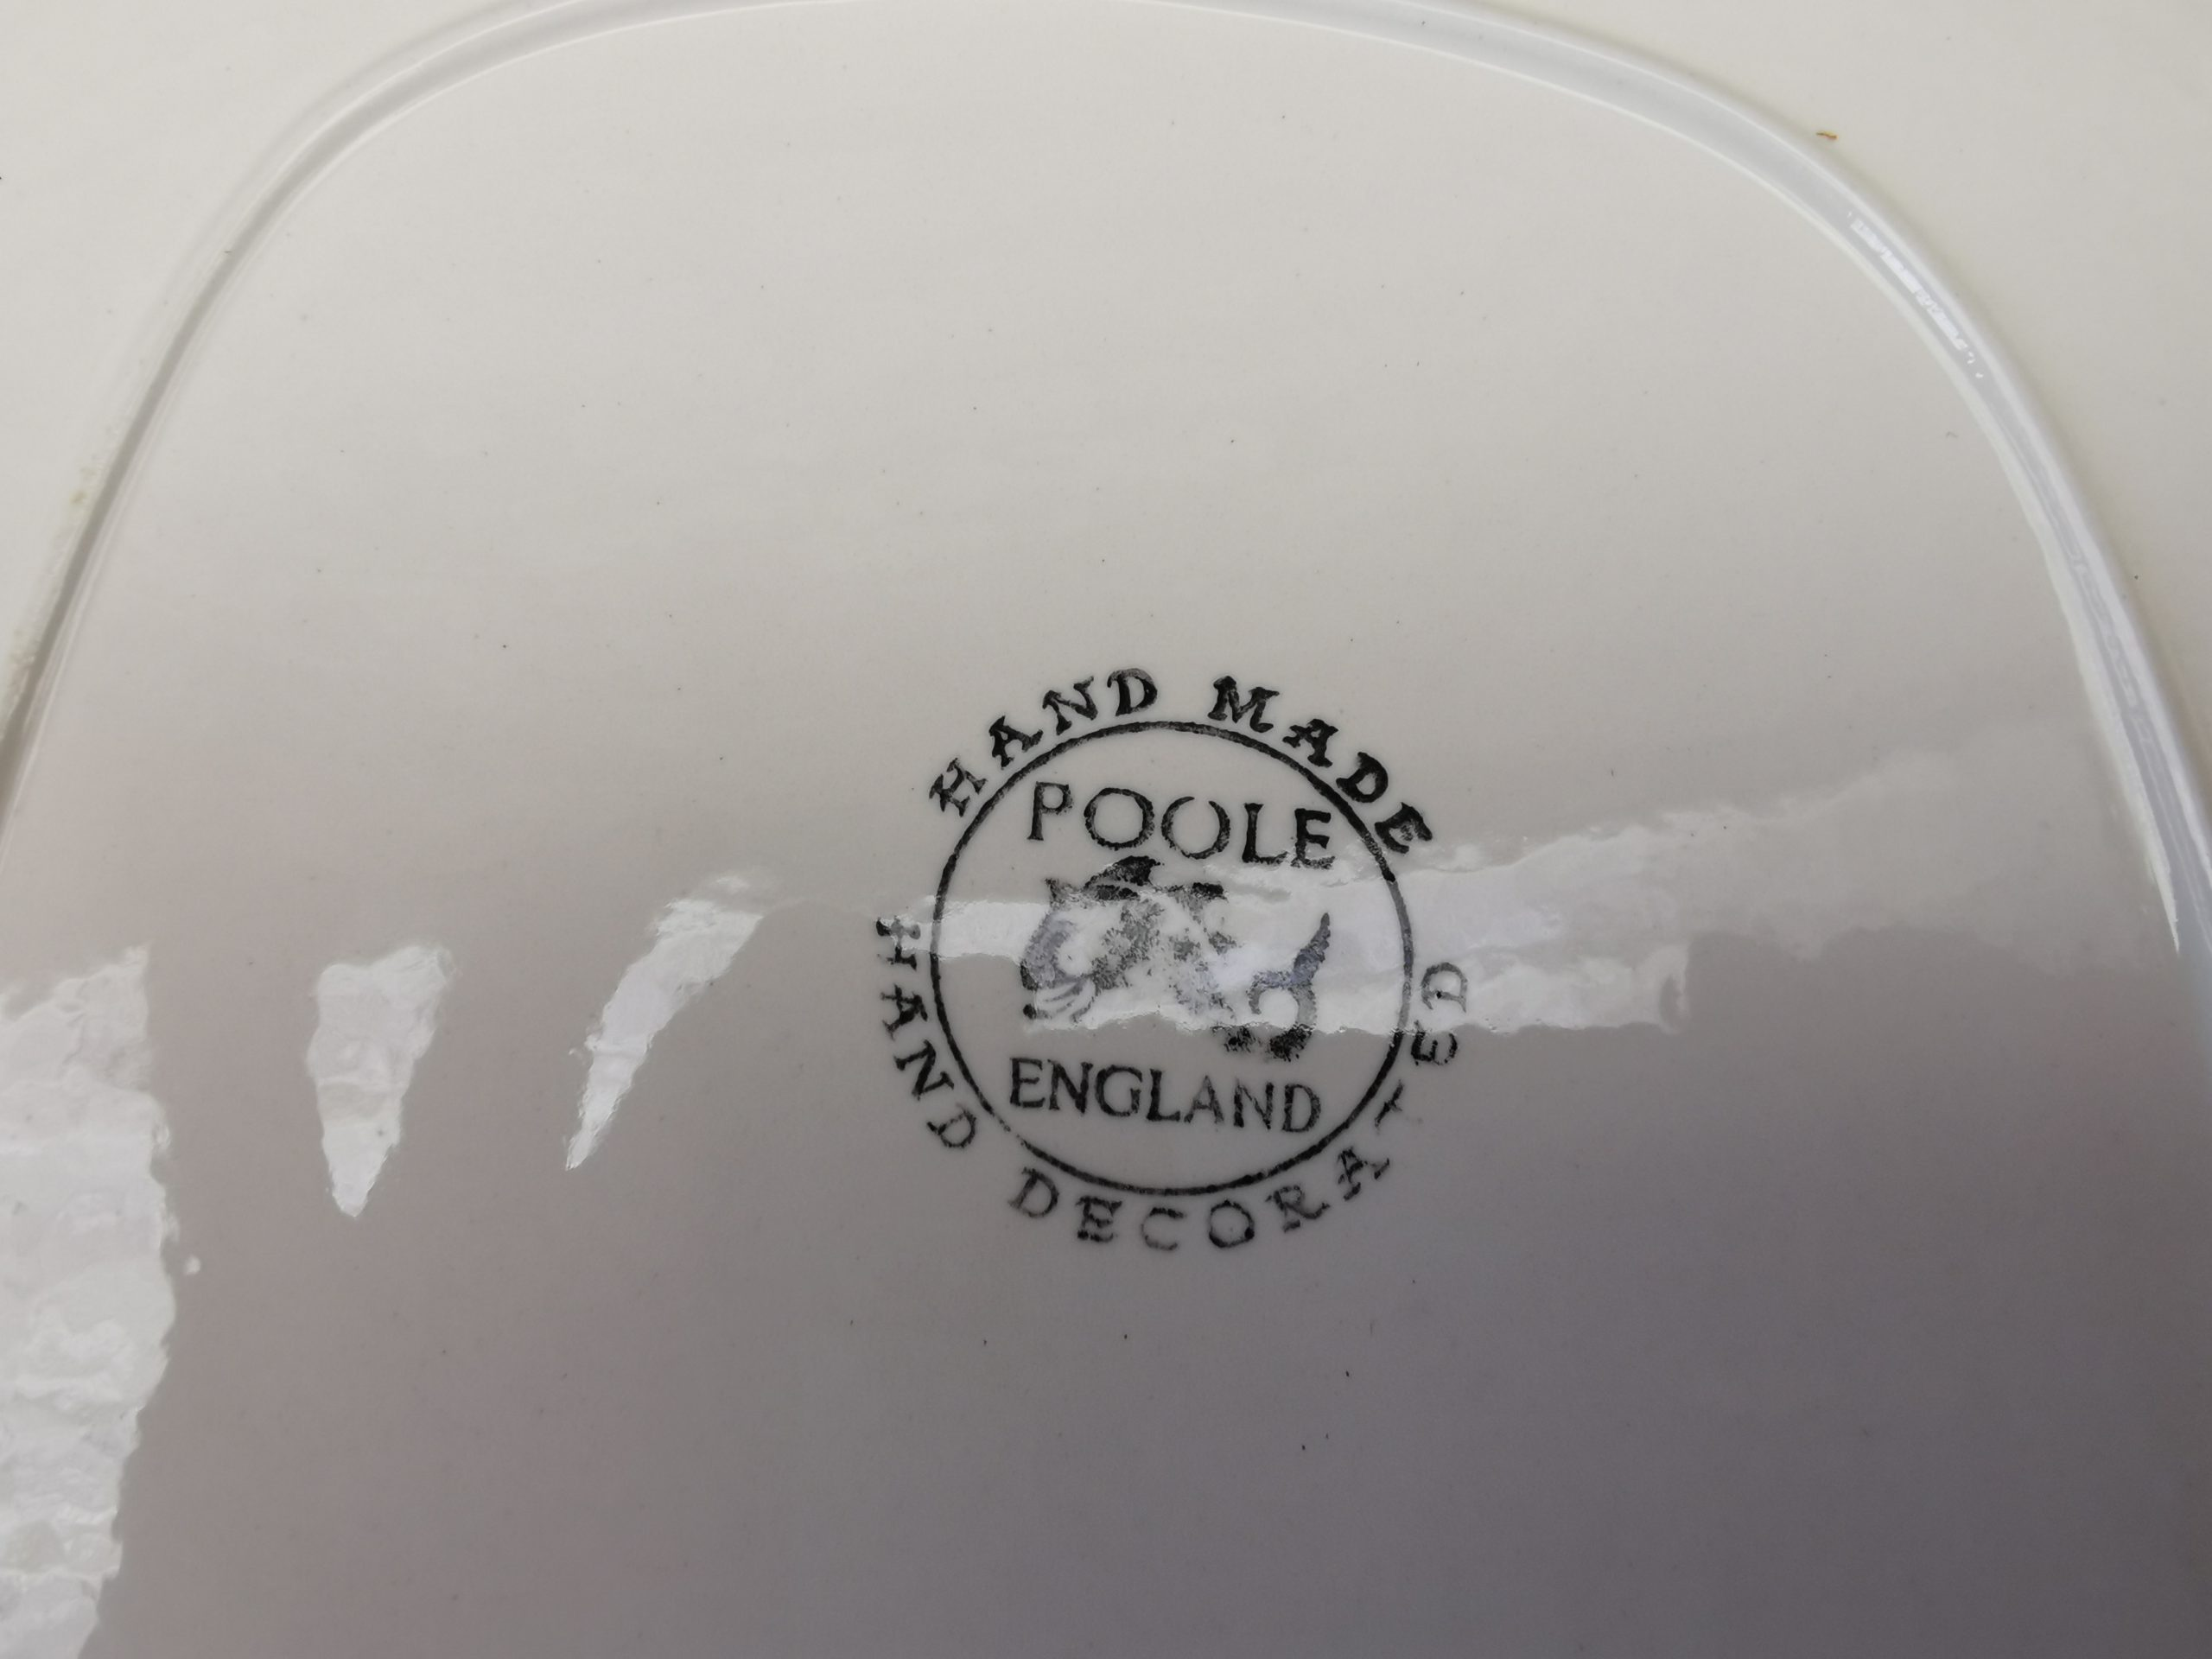 Backstamp for Poole Pottery Ripple Pattern by A Read.